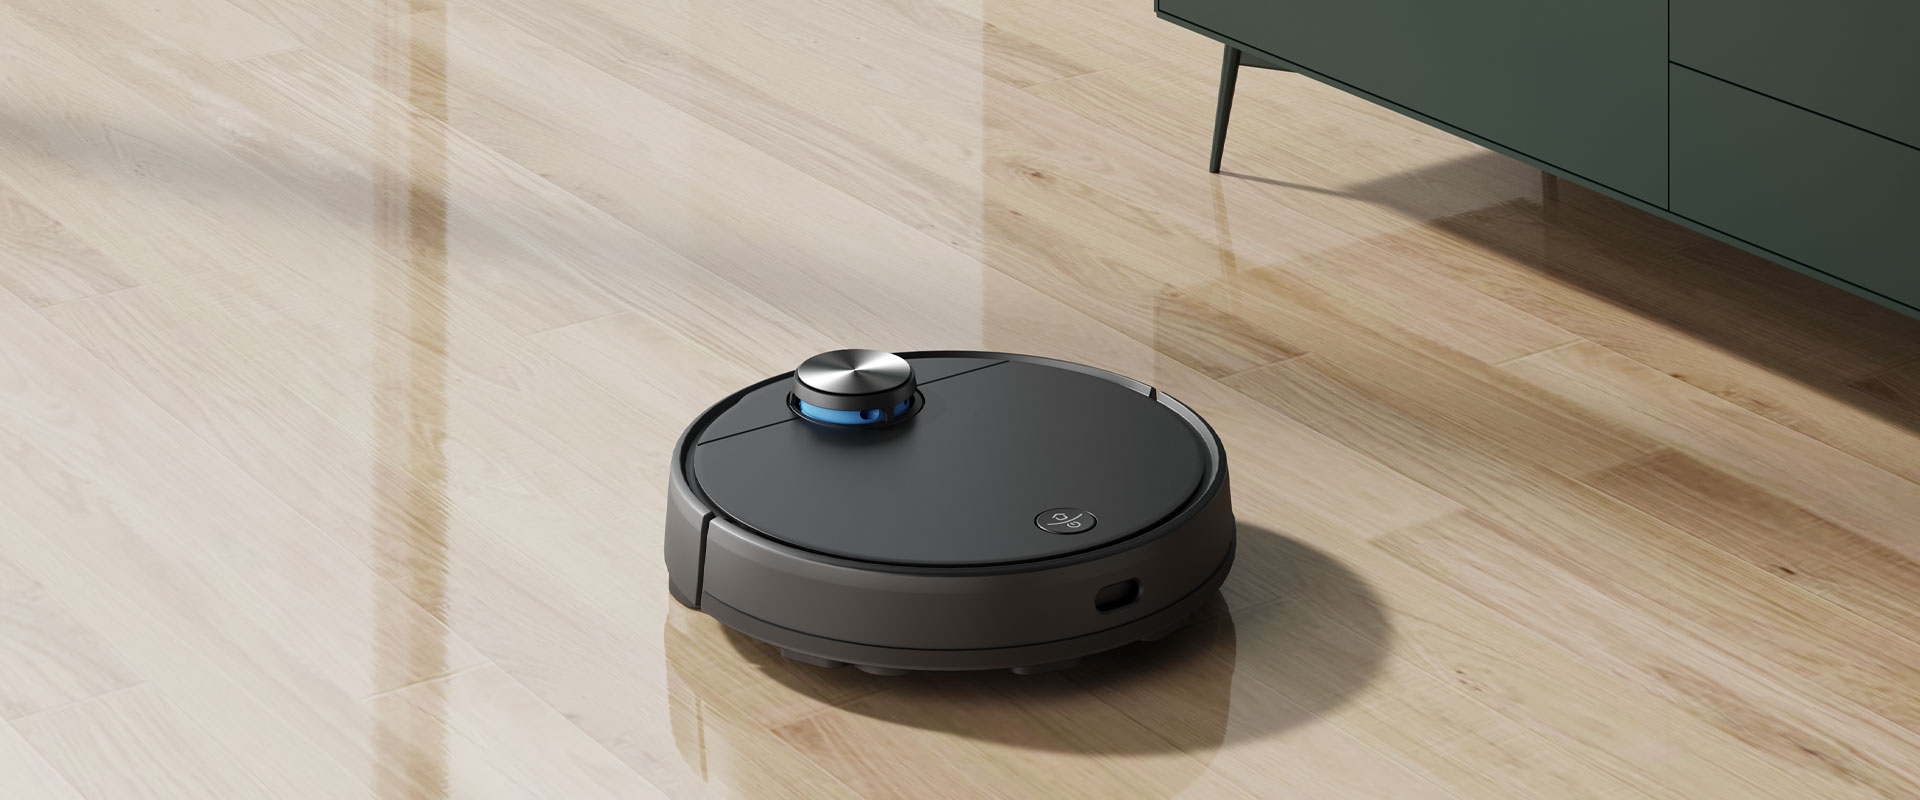 Viomi V3 mopping robot with Multi-level Map